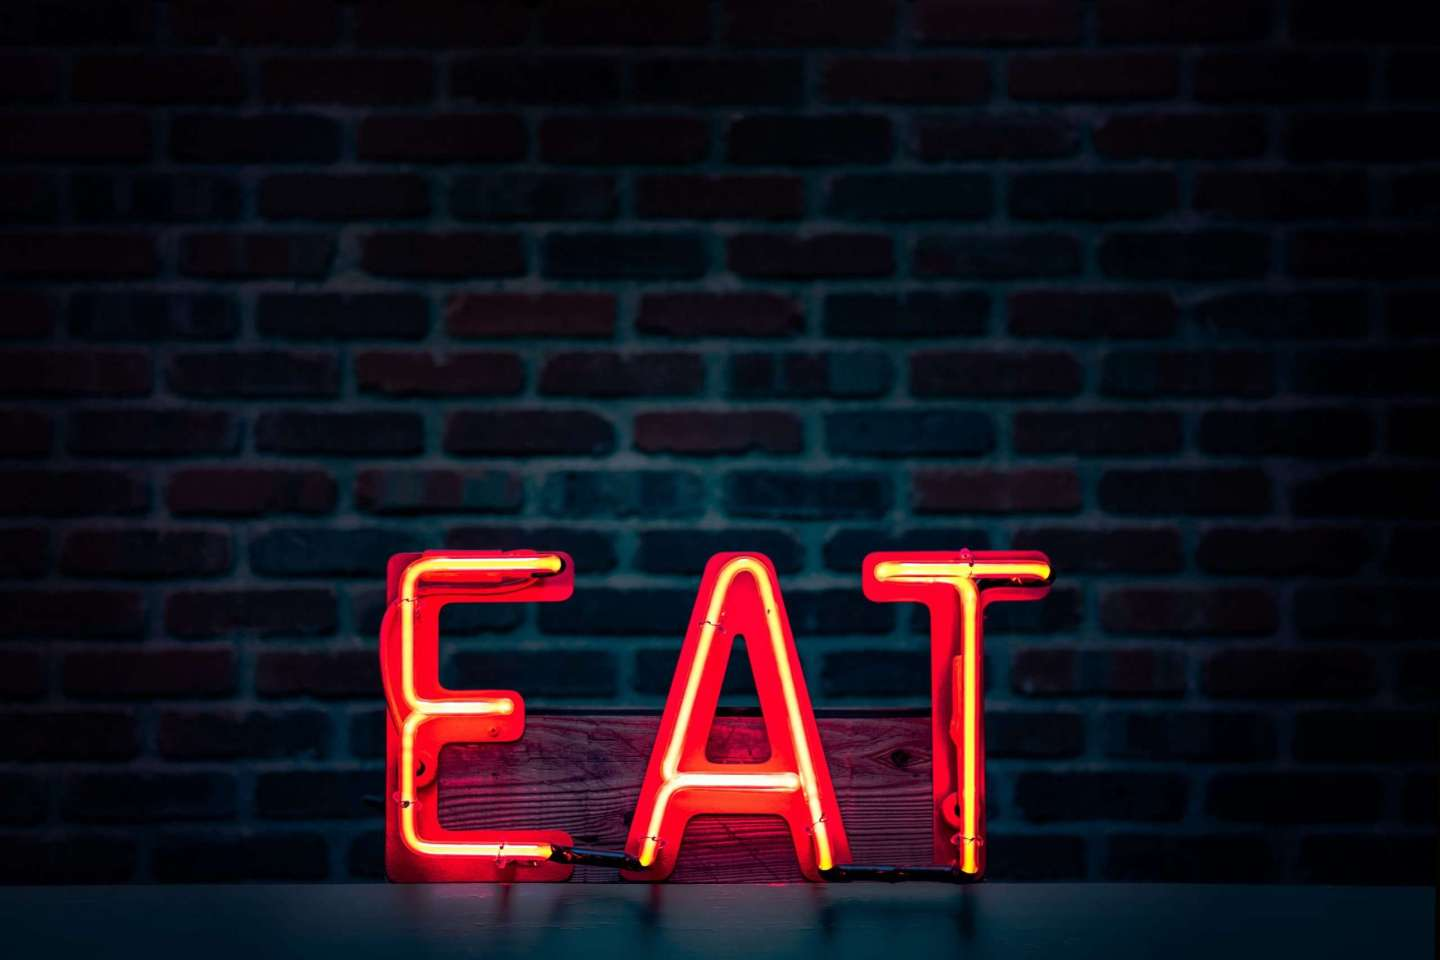 LED sign saying 'EAT'